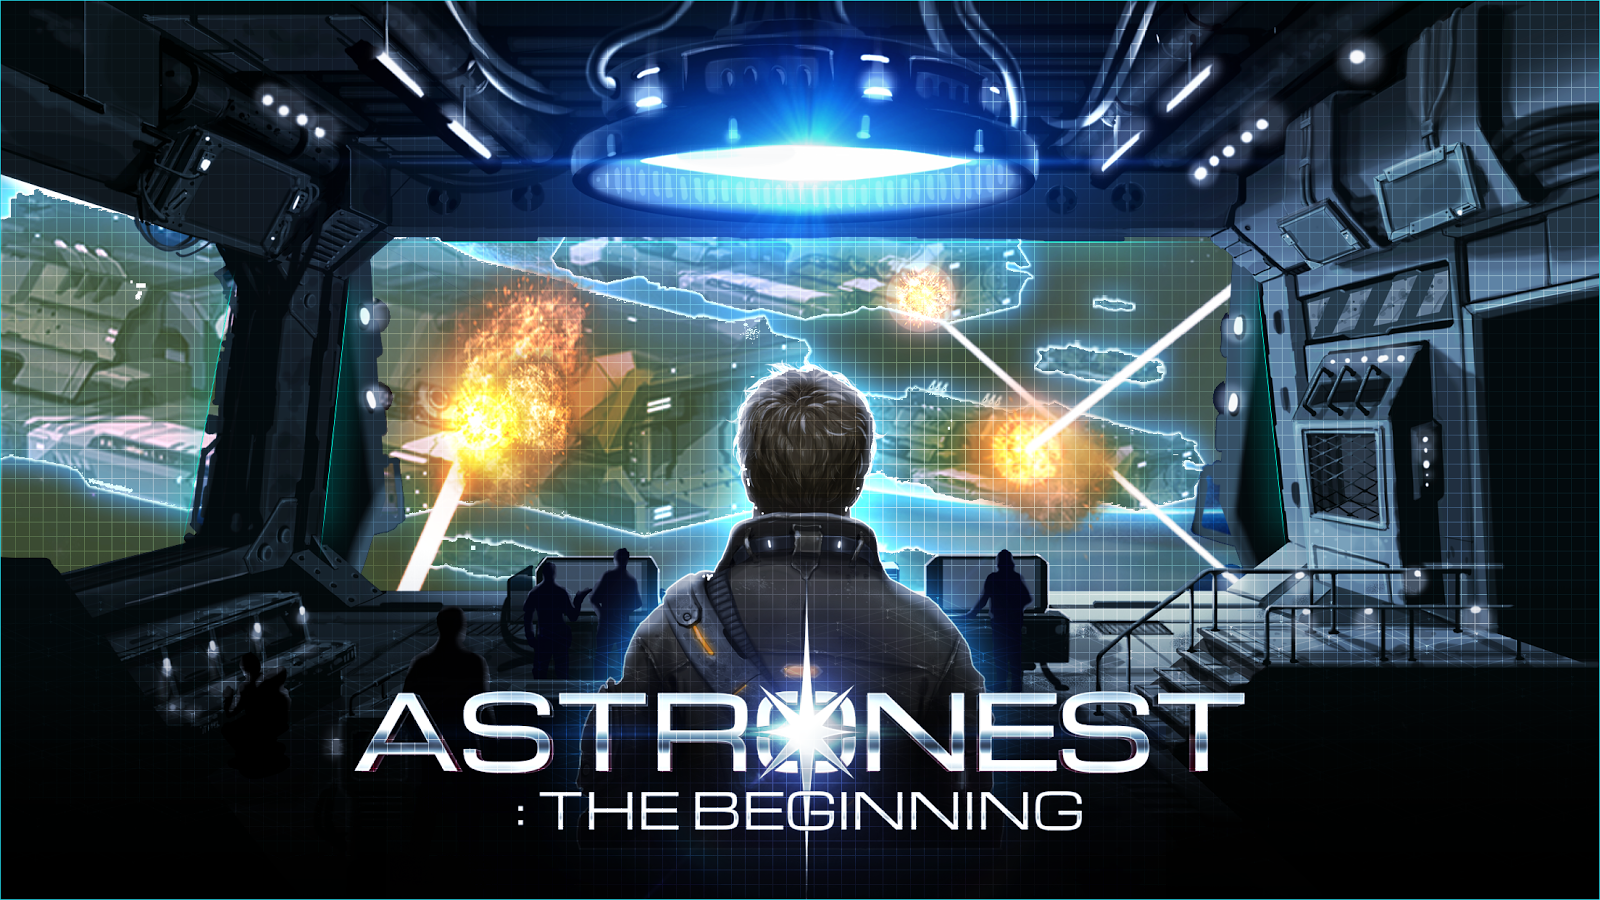 ASTRONEST - The Beginning Screenshot 4